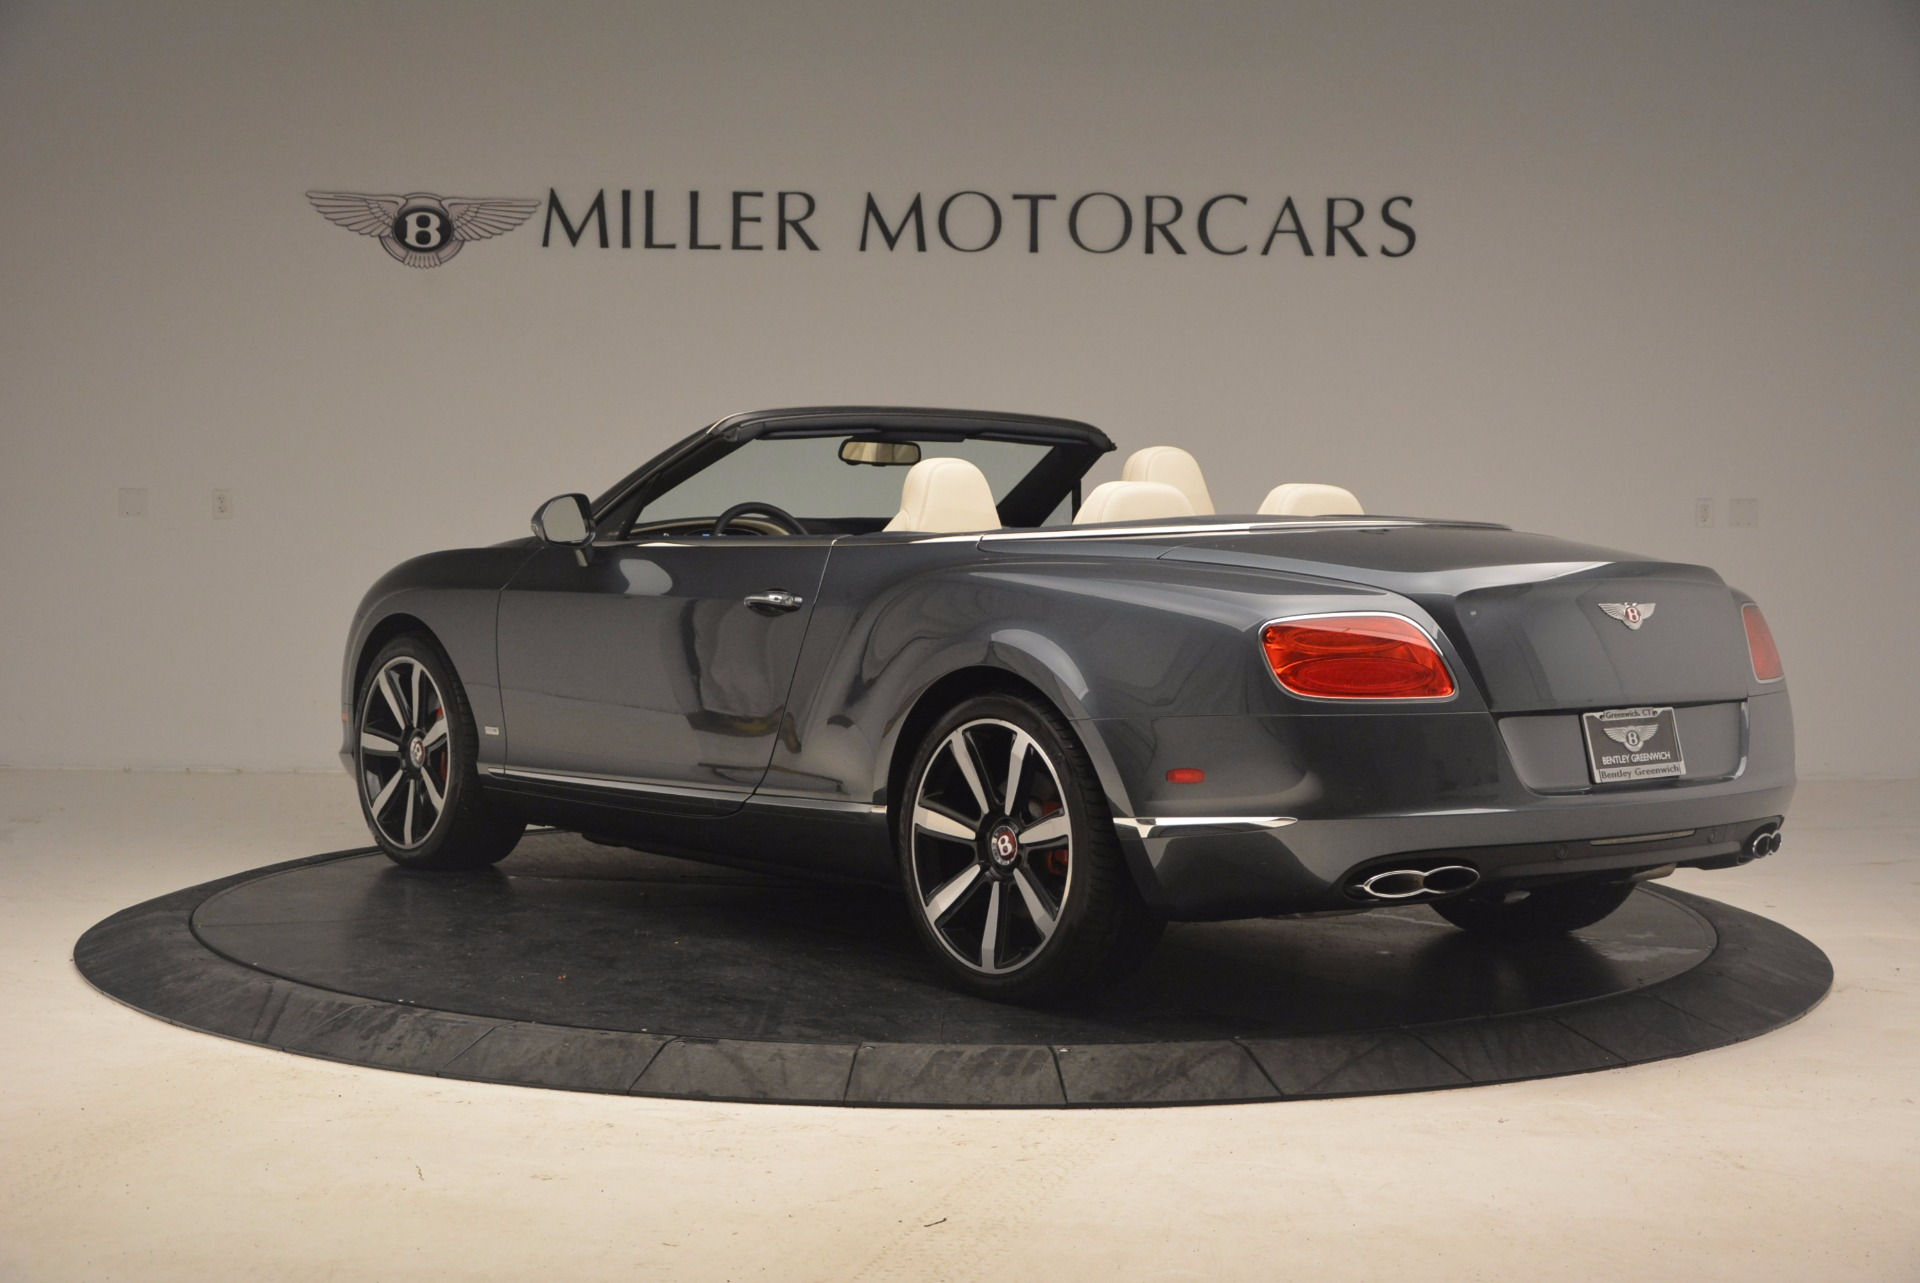 Used 2013 Bentley Continental GT V8 Le Mans Edition, 1 of 48 For Sale In Greenwich, CT. Alfa Romeo of Greenwich, 7226 1288_p4